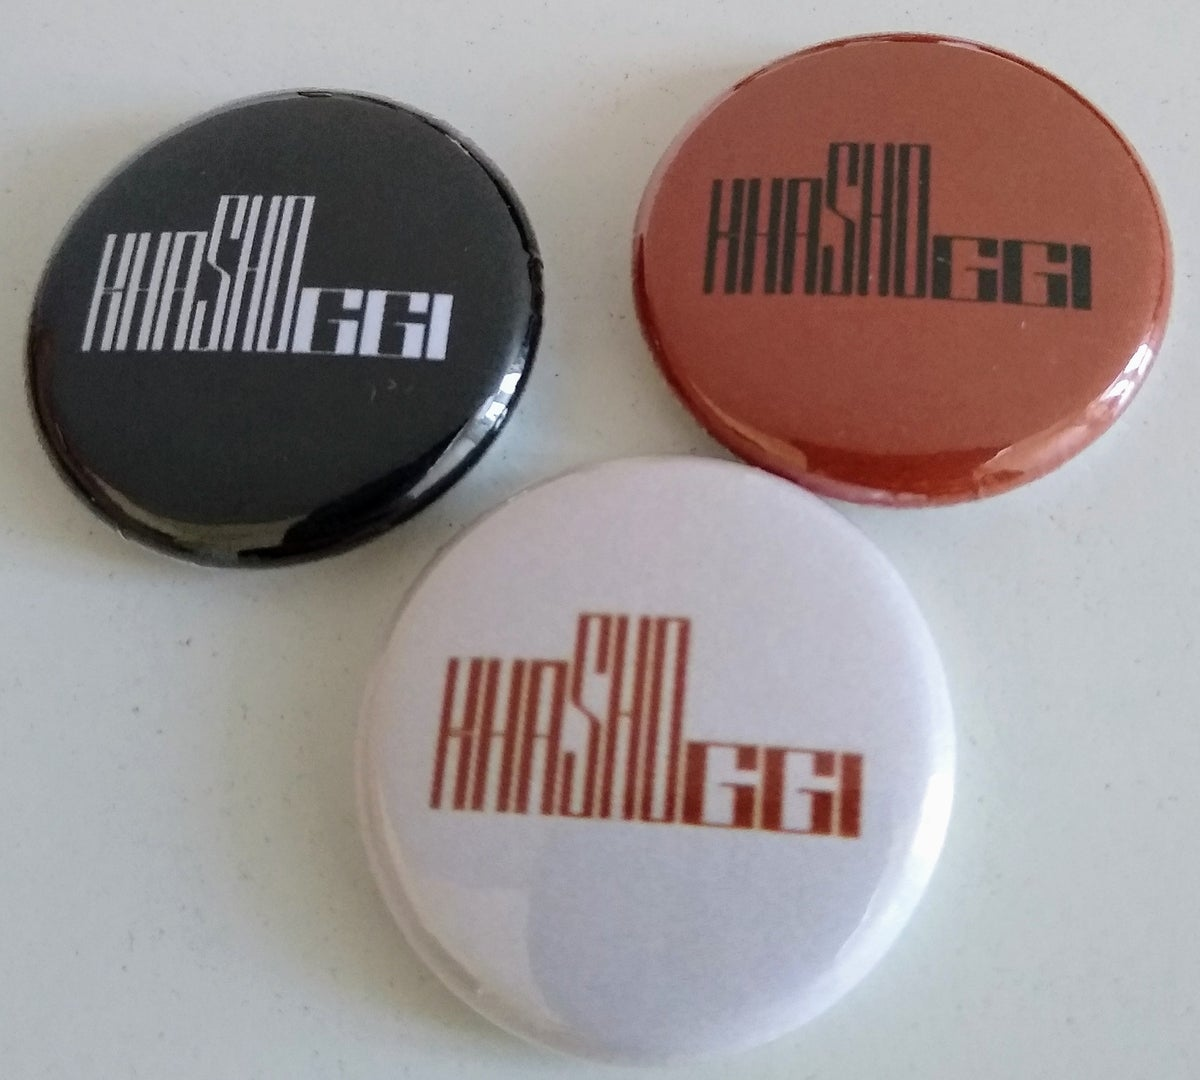 Image of Khashoggi Badges